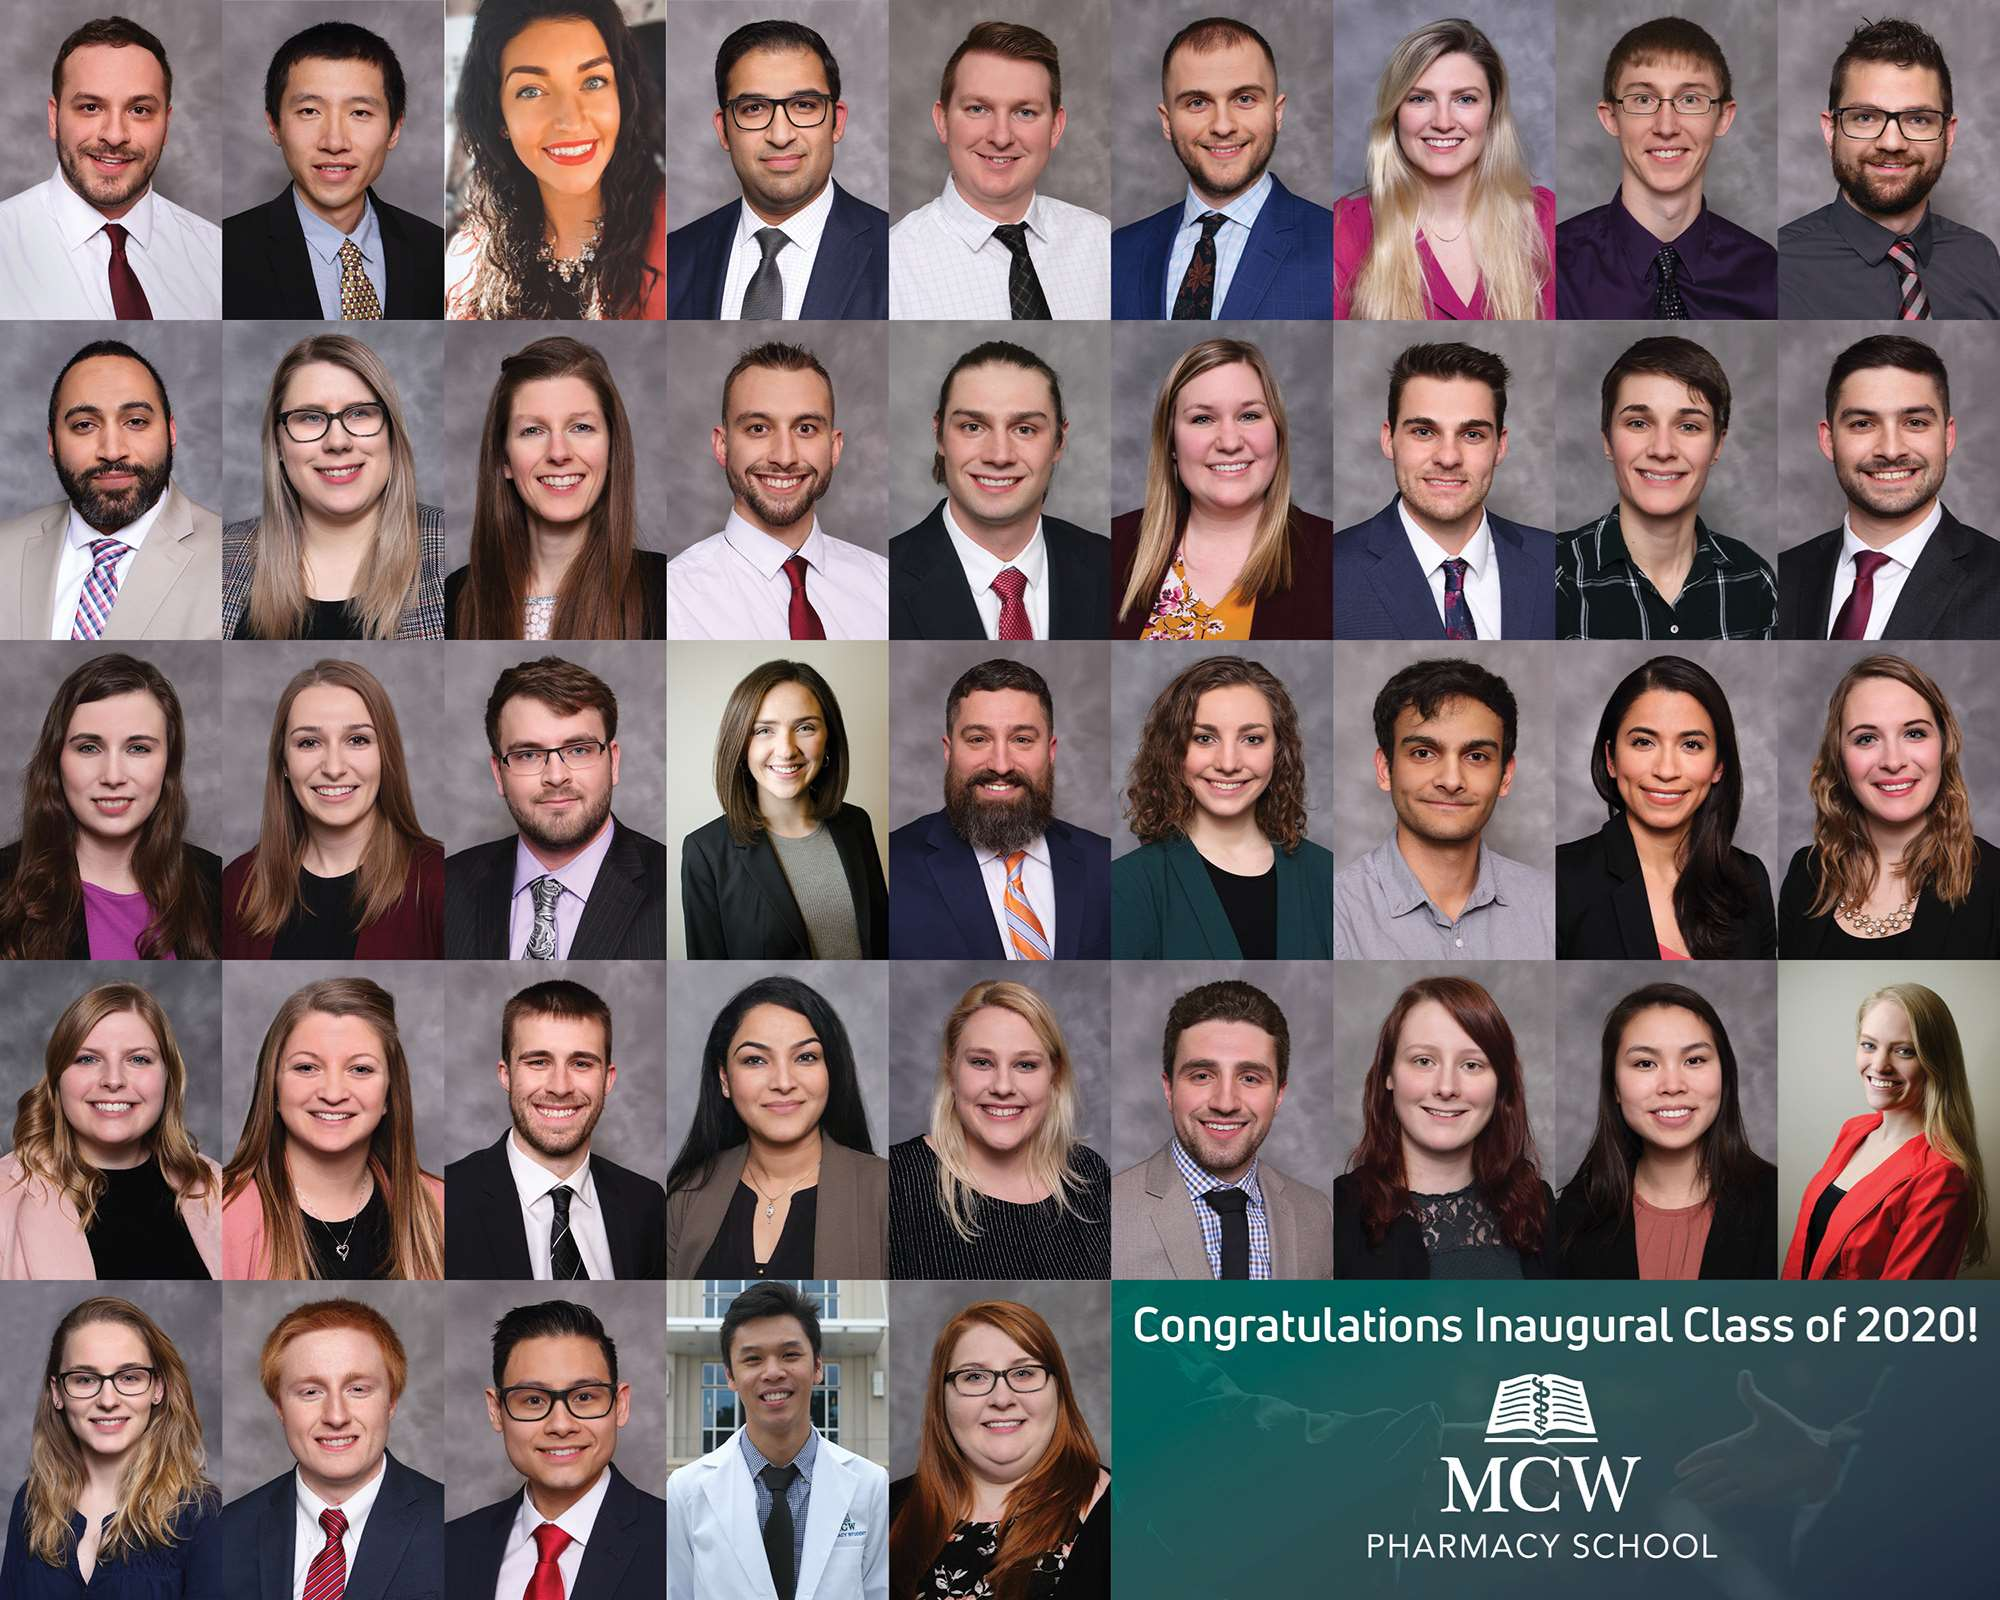 MCW School of Pharmacy Graduates First Class